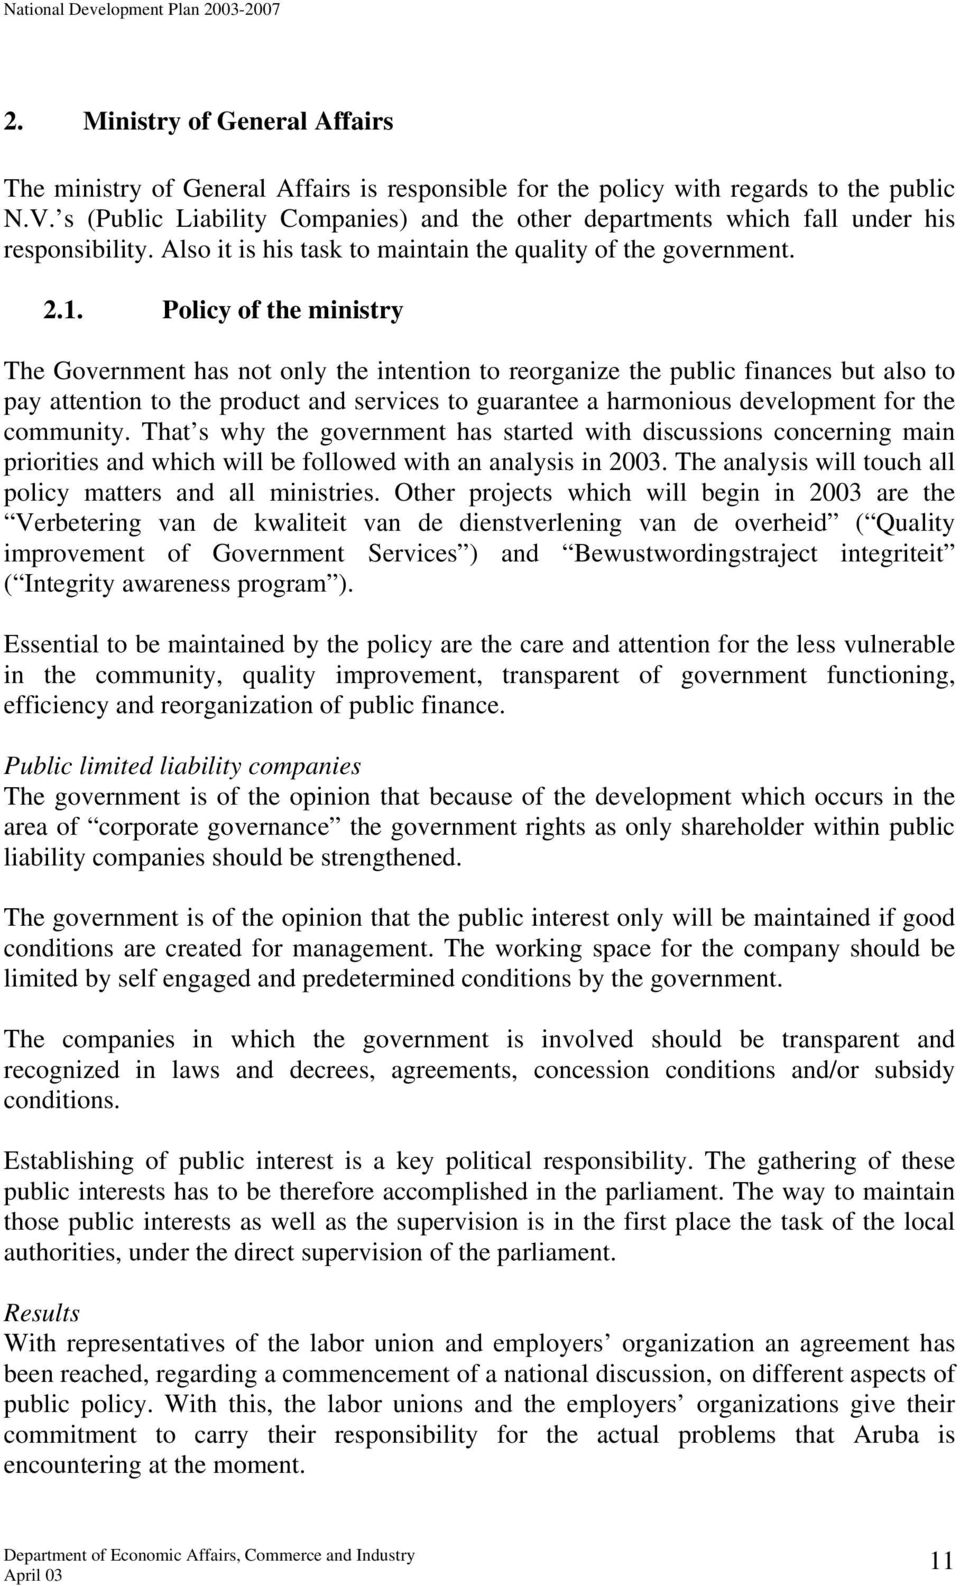 Policy of the ministry The Government has not only the intention to reorganize the public finances but also to pay attention to the product and services to guarantee a harmonious development for the